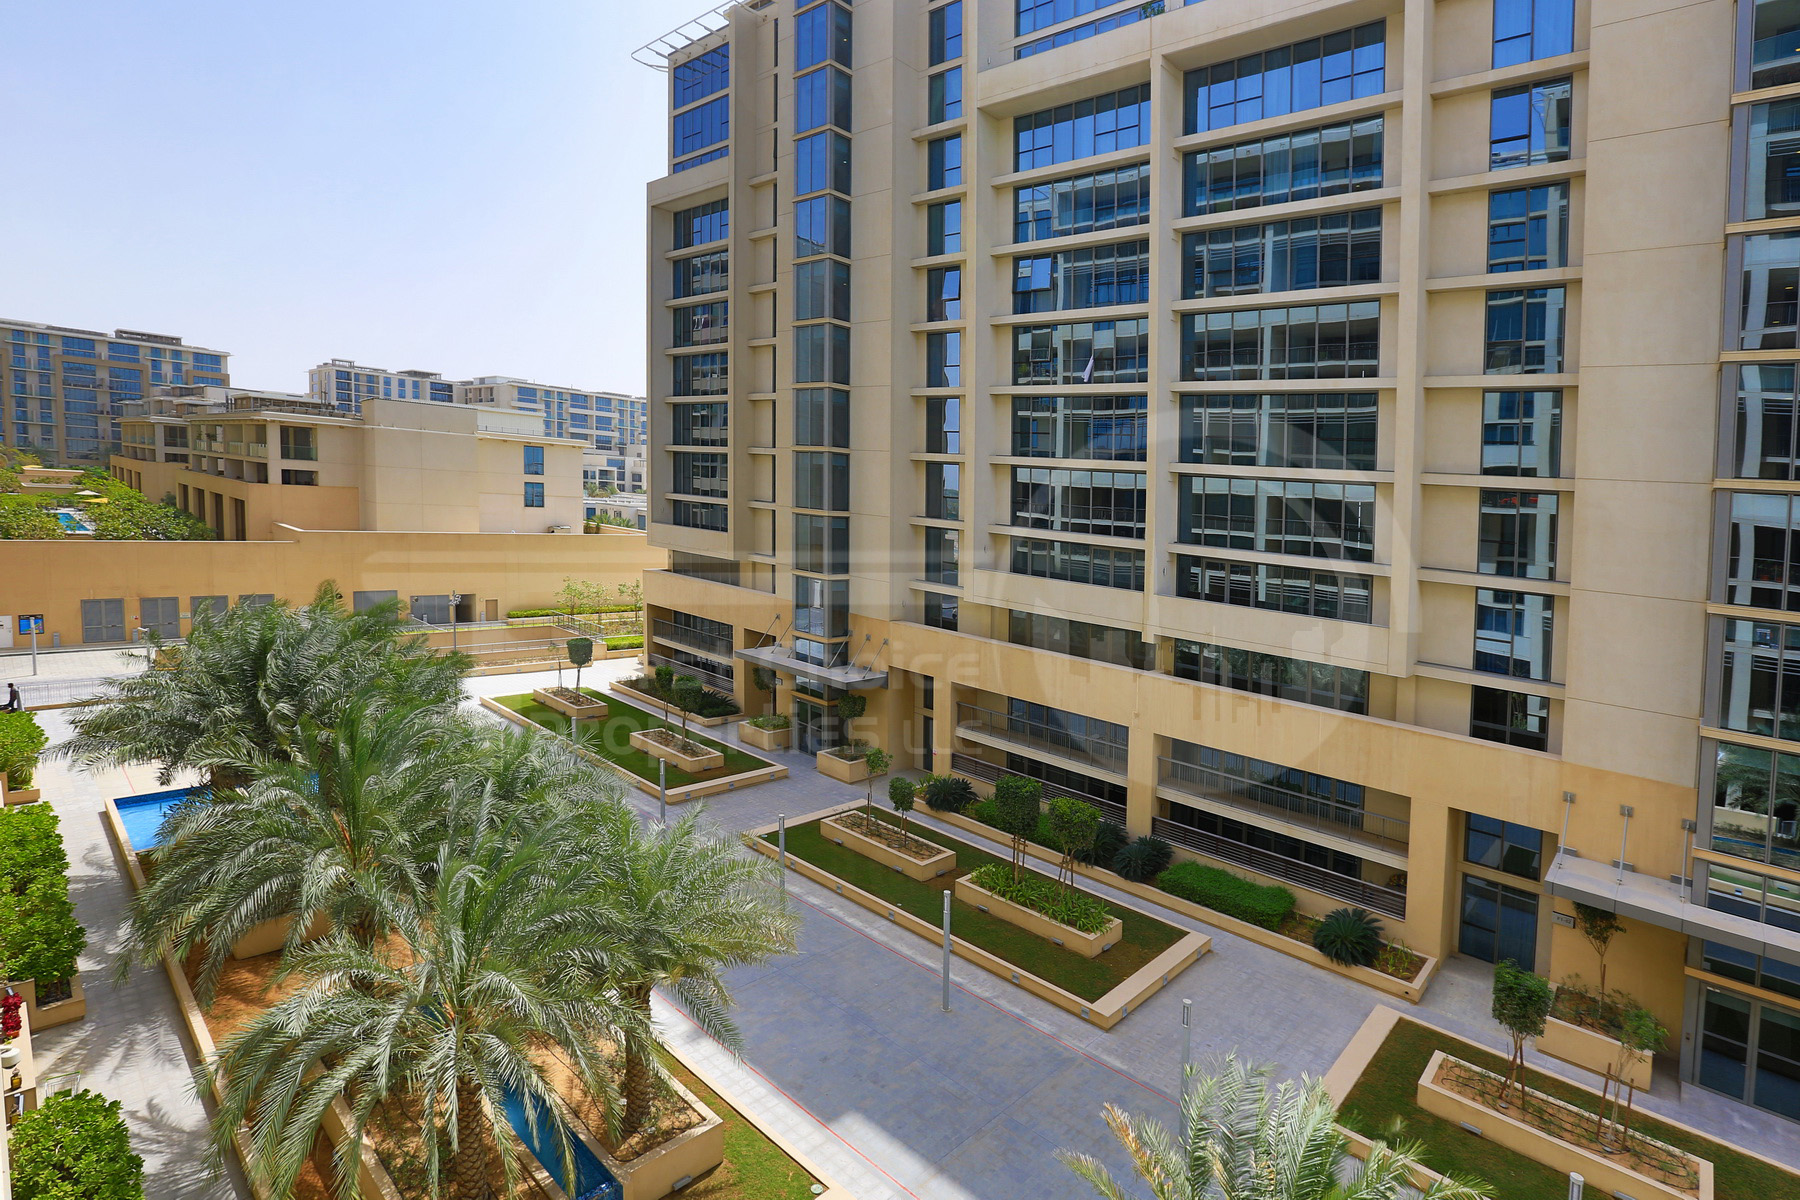 Studio - 1BR - 2BR - 3BR - 4BR Apartment - Abu Dhabi - UAE -Al Raha Beach - Al Zeina - Outside View (5).JPG